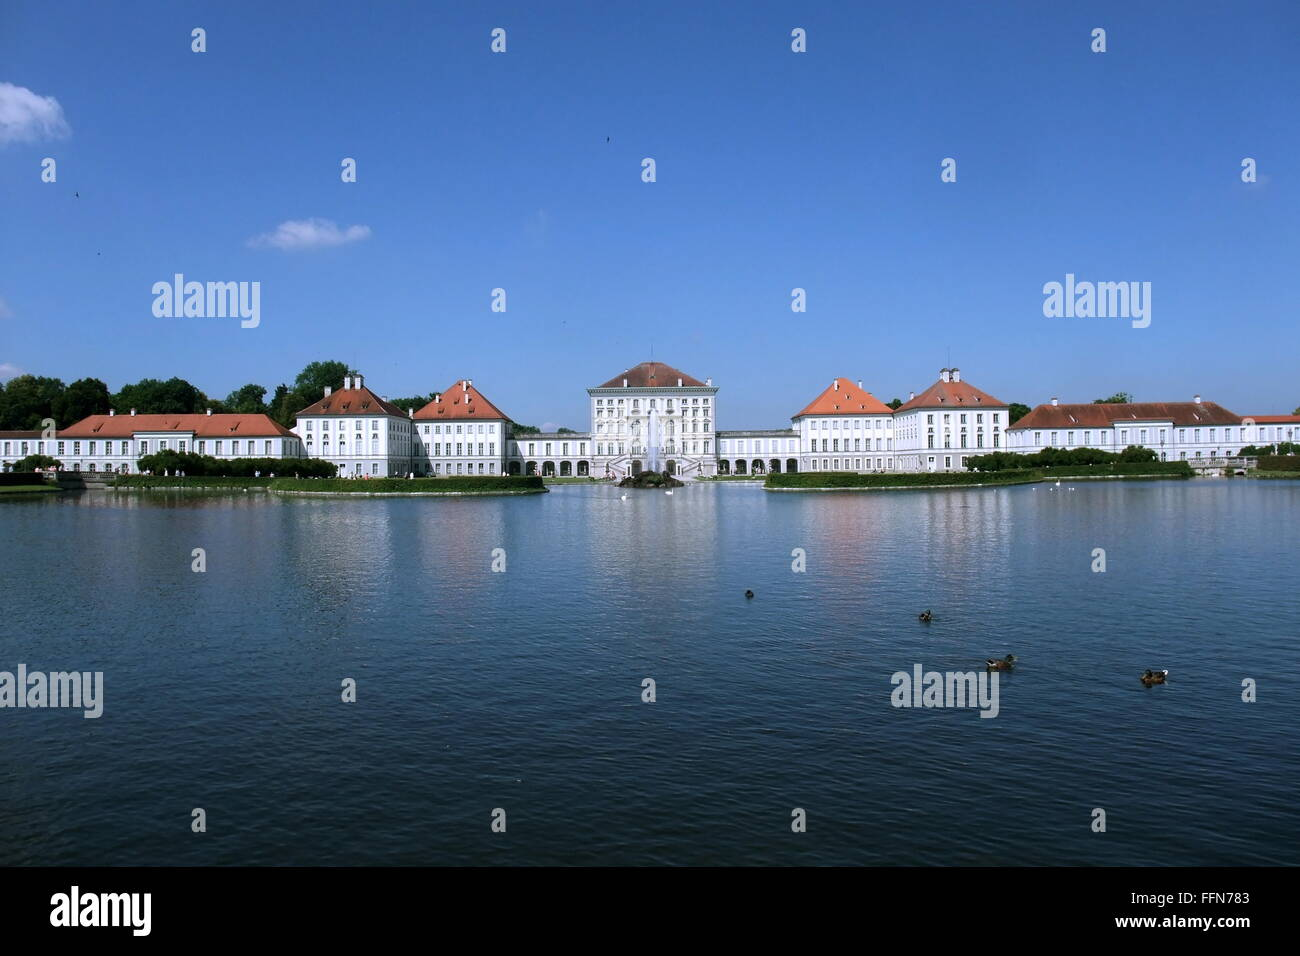 geography / travel, Germany, Bavaria, Munich, castles, Nymphenburg Castle, exterior view, Additional-Rights-Clearance Stock Photo